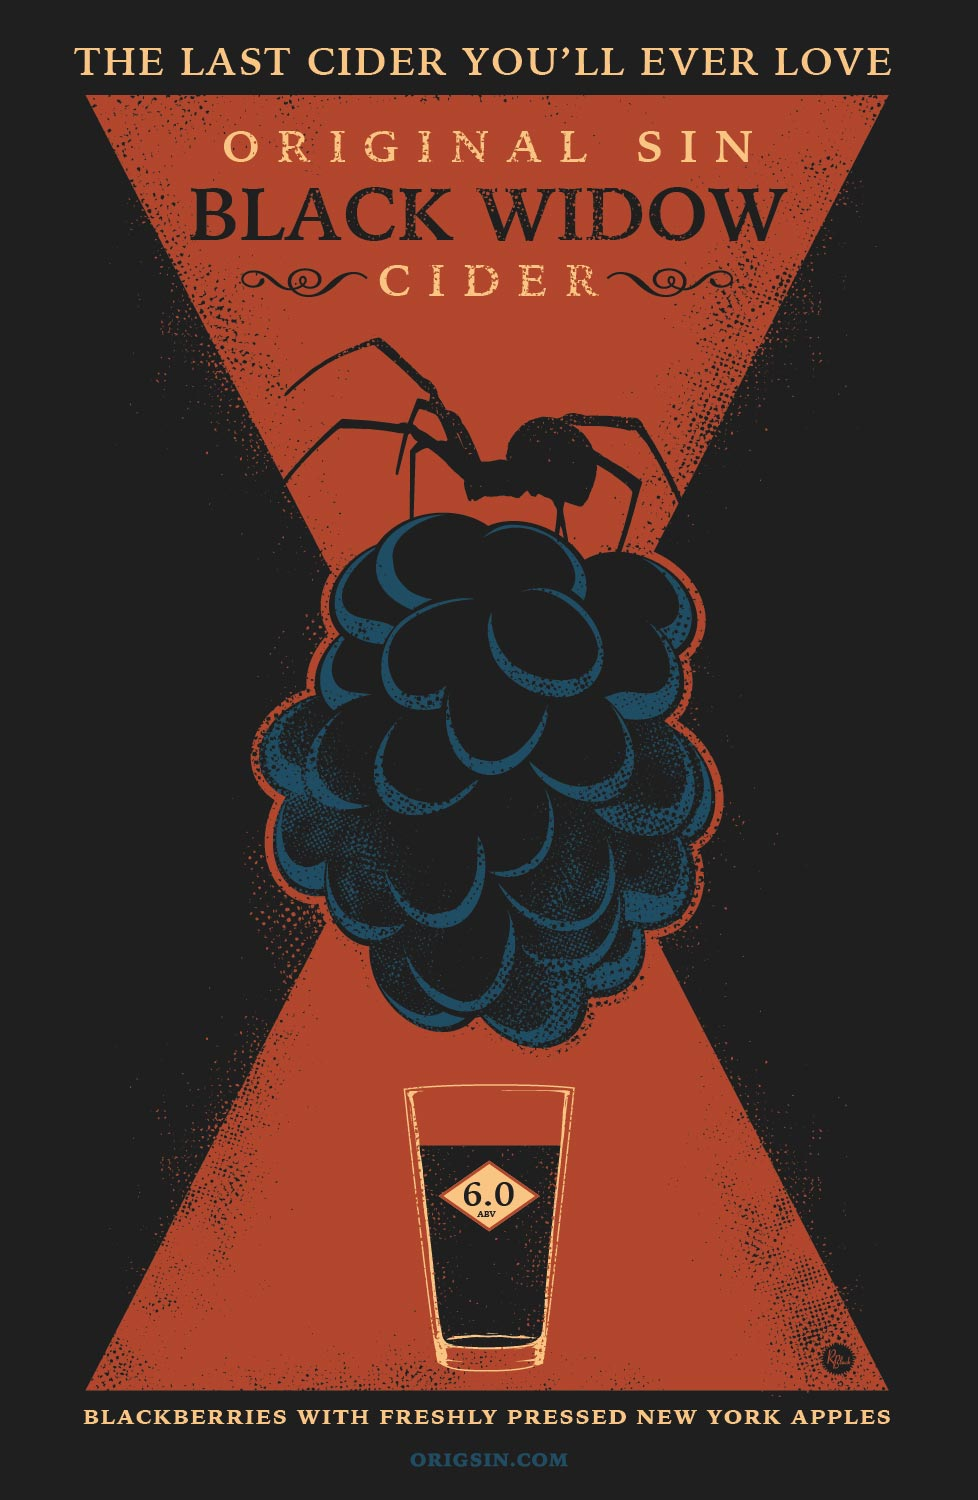 Original Sin Black Widow Cider will be available in select markets in June, 2017